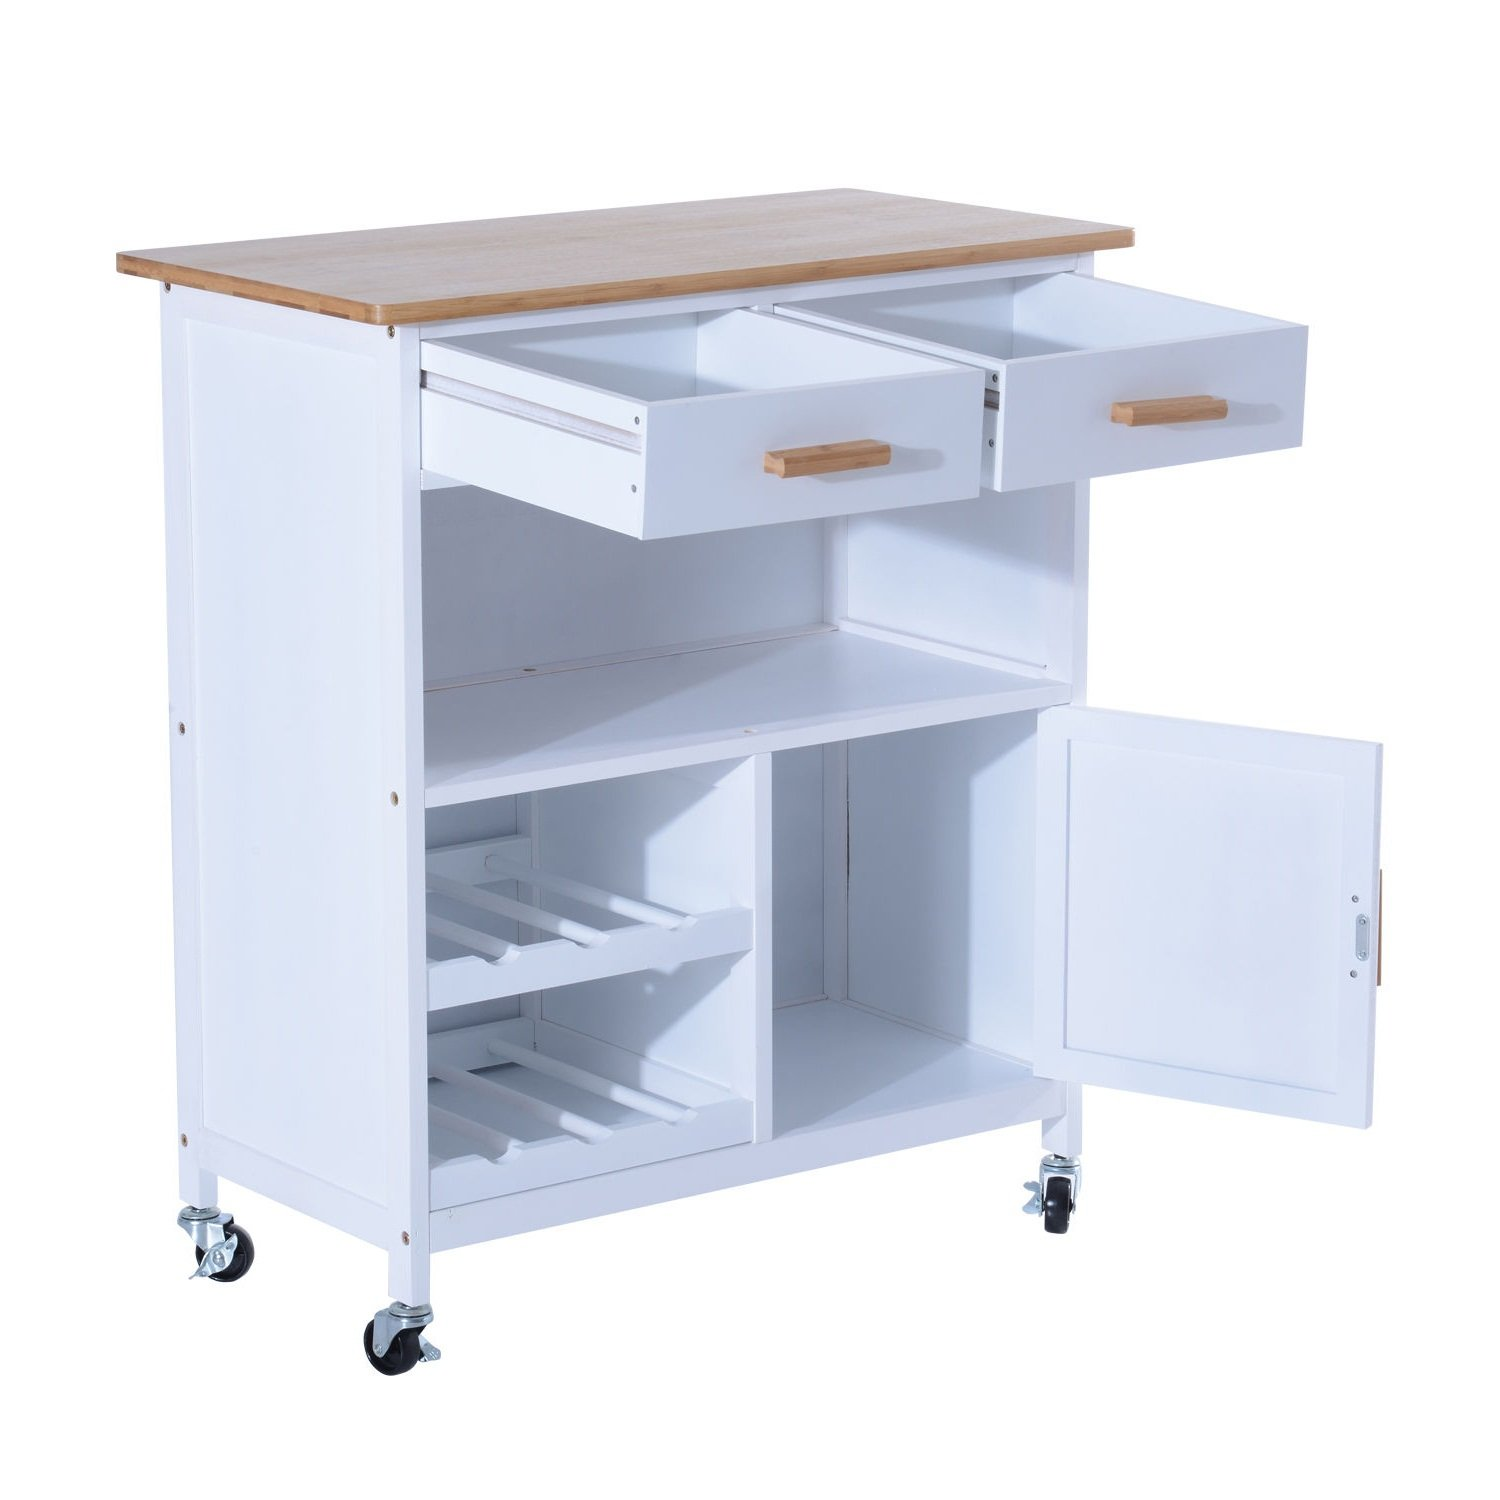 NEW White, Wood MDF Kitchen Trolley Dining Cart Drawer Storage Rolling Wheels